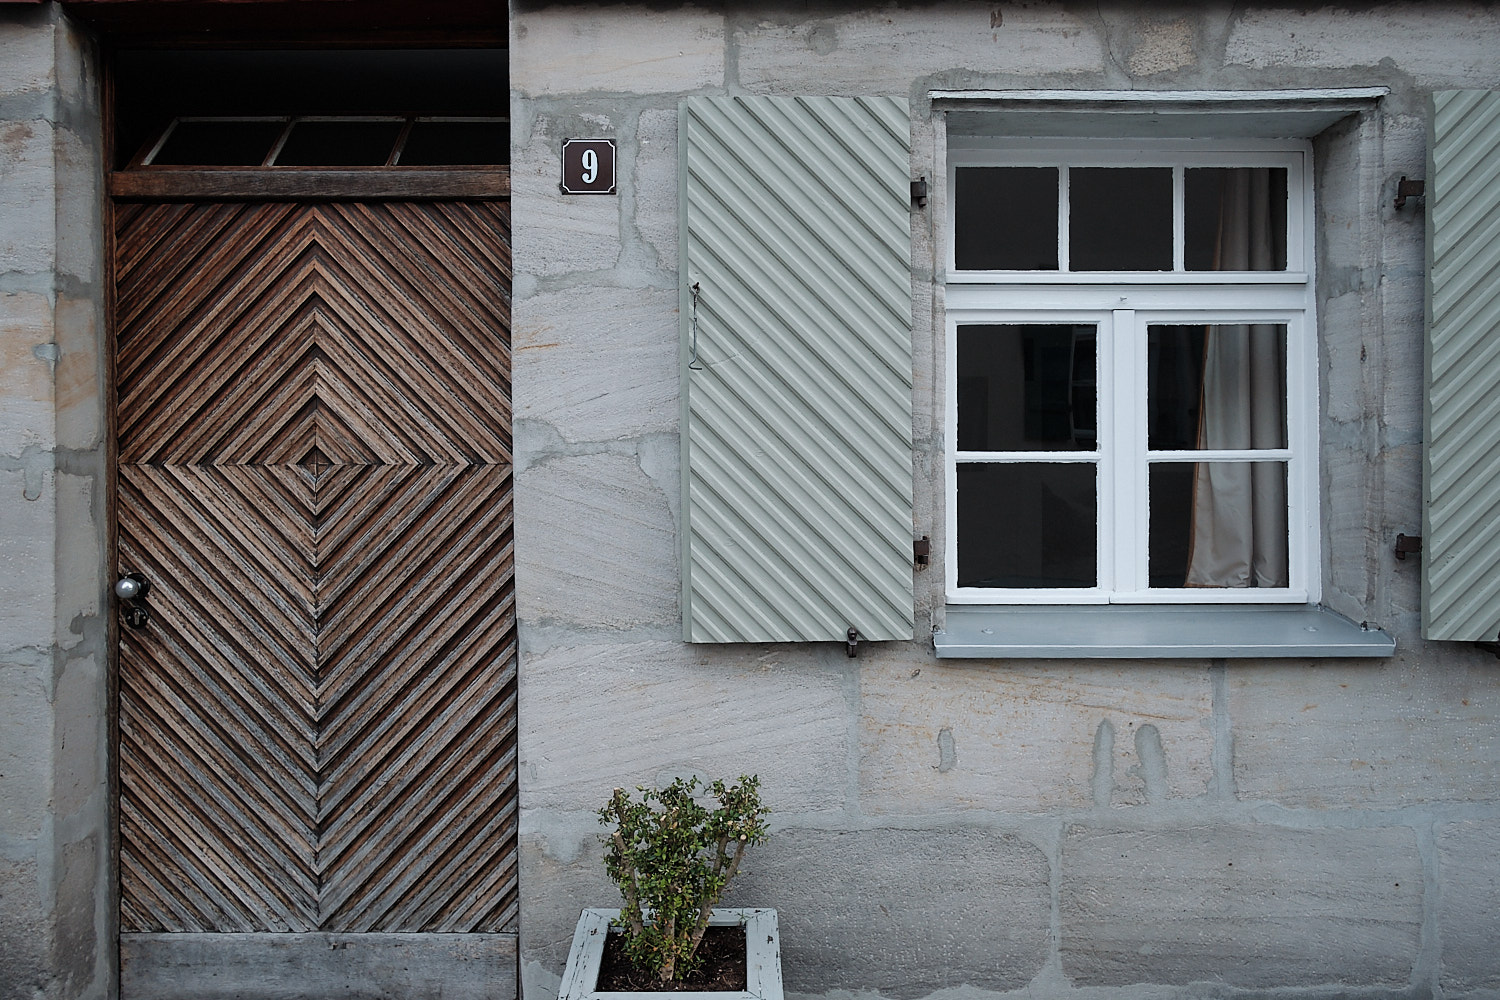 Housedoors with characteristic squared concentric releif in Franconia, Germany